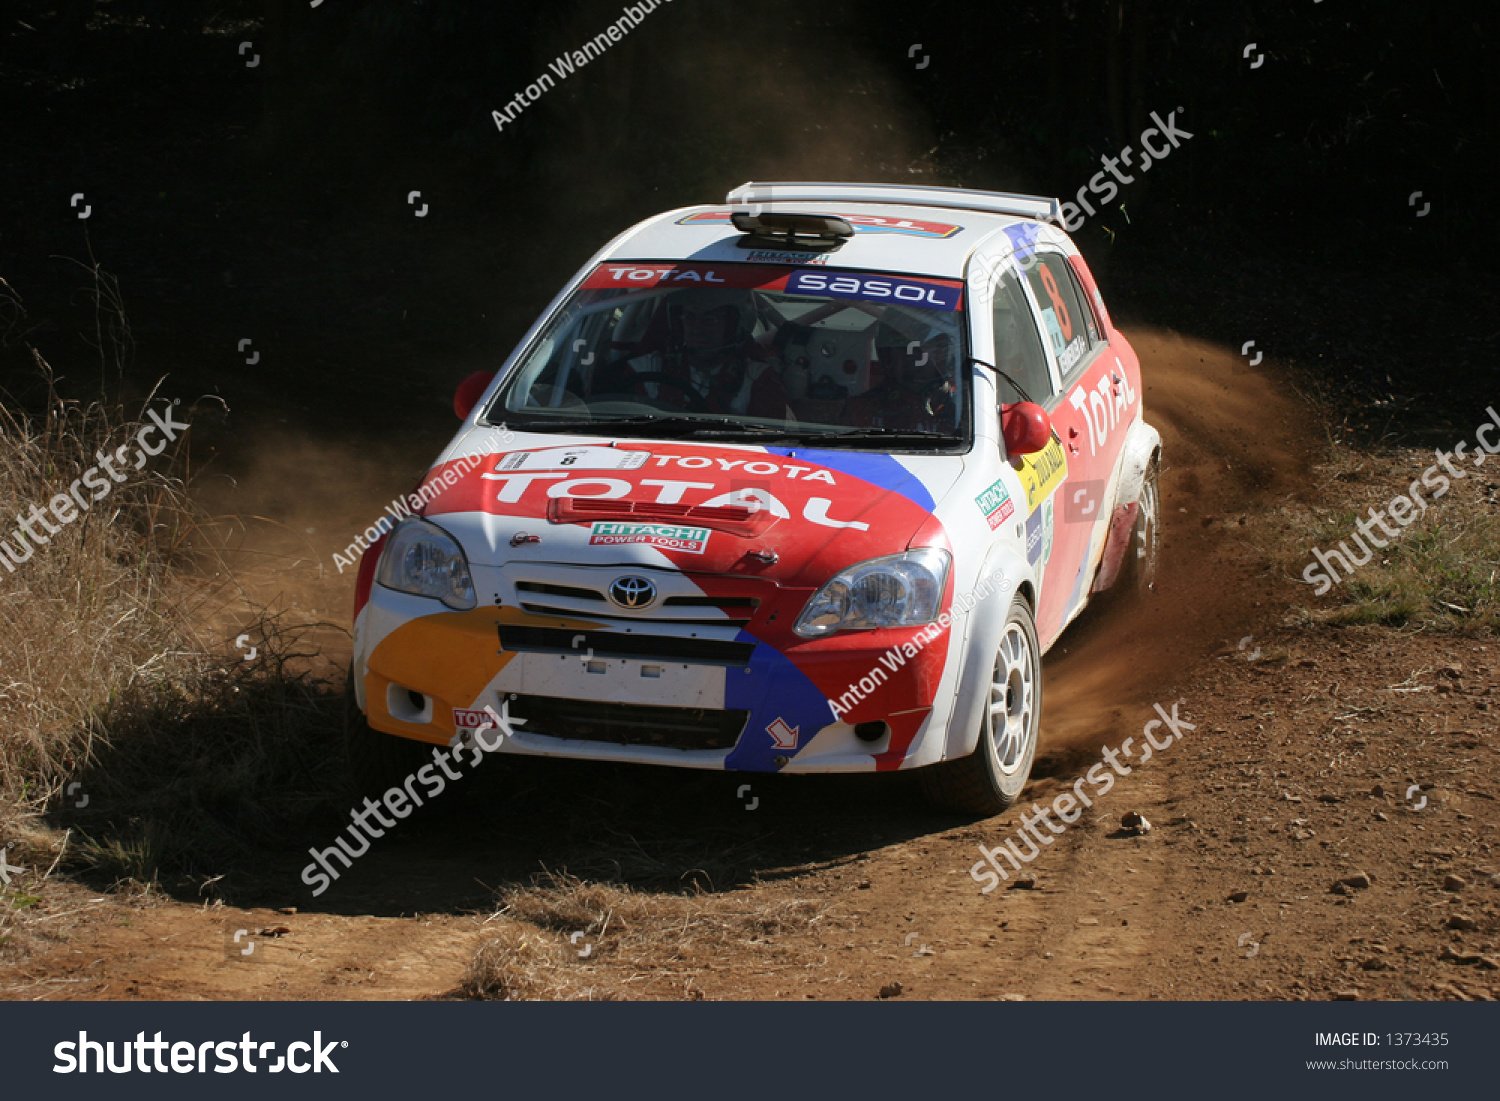 Toyota Rally Car Stock Photo 1373435 - Shutterstock